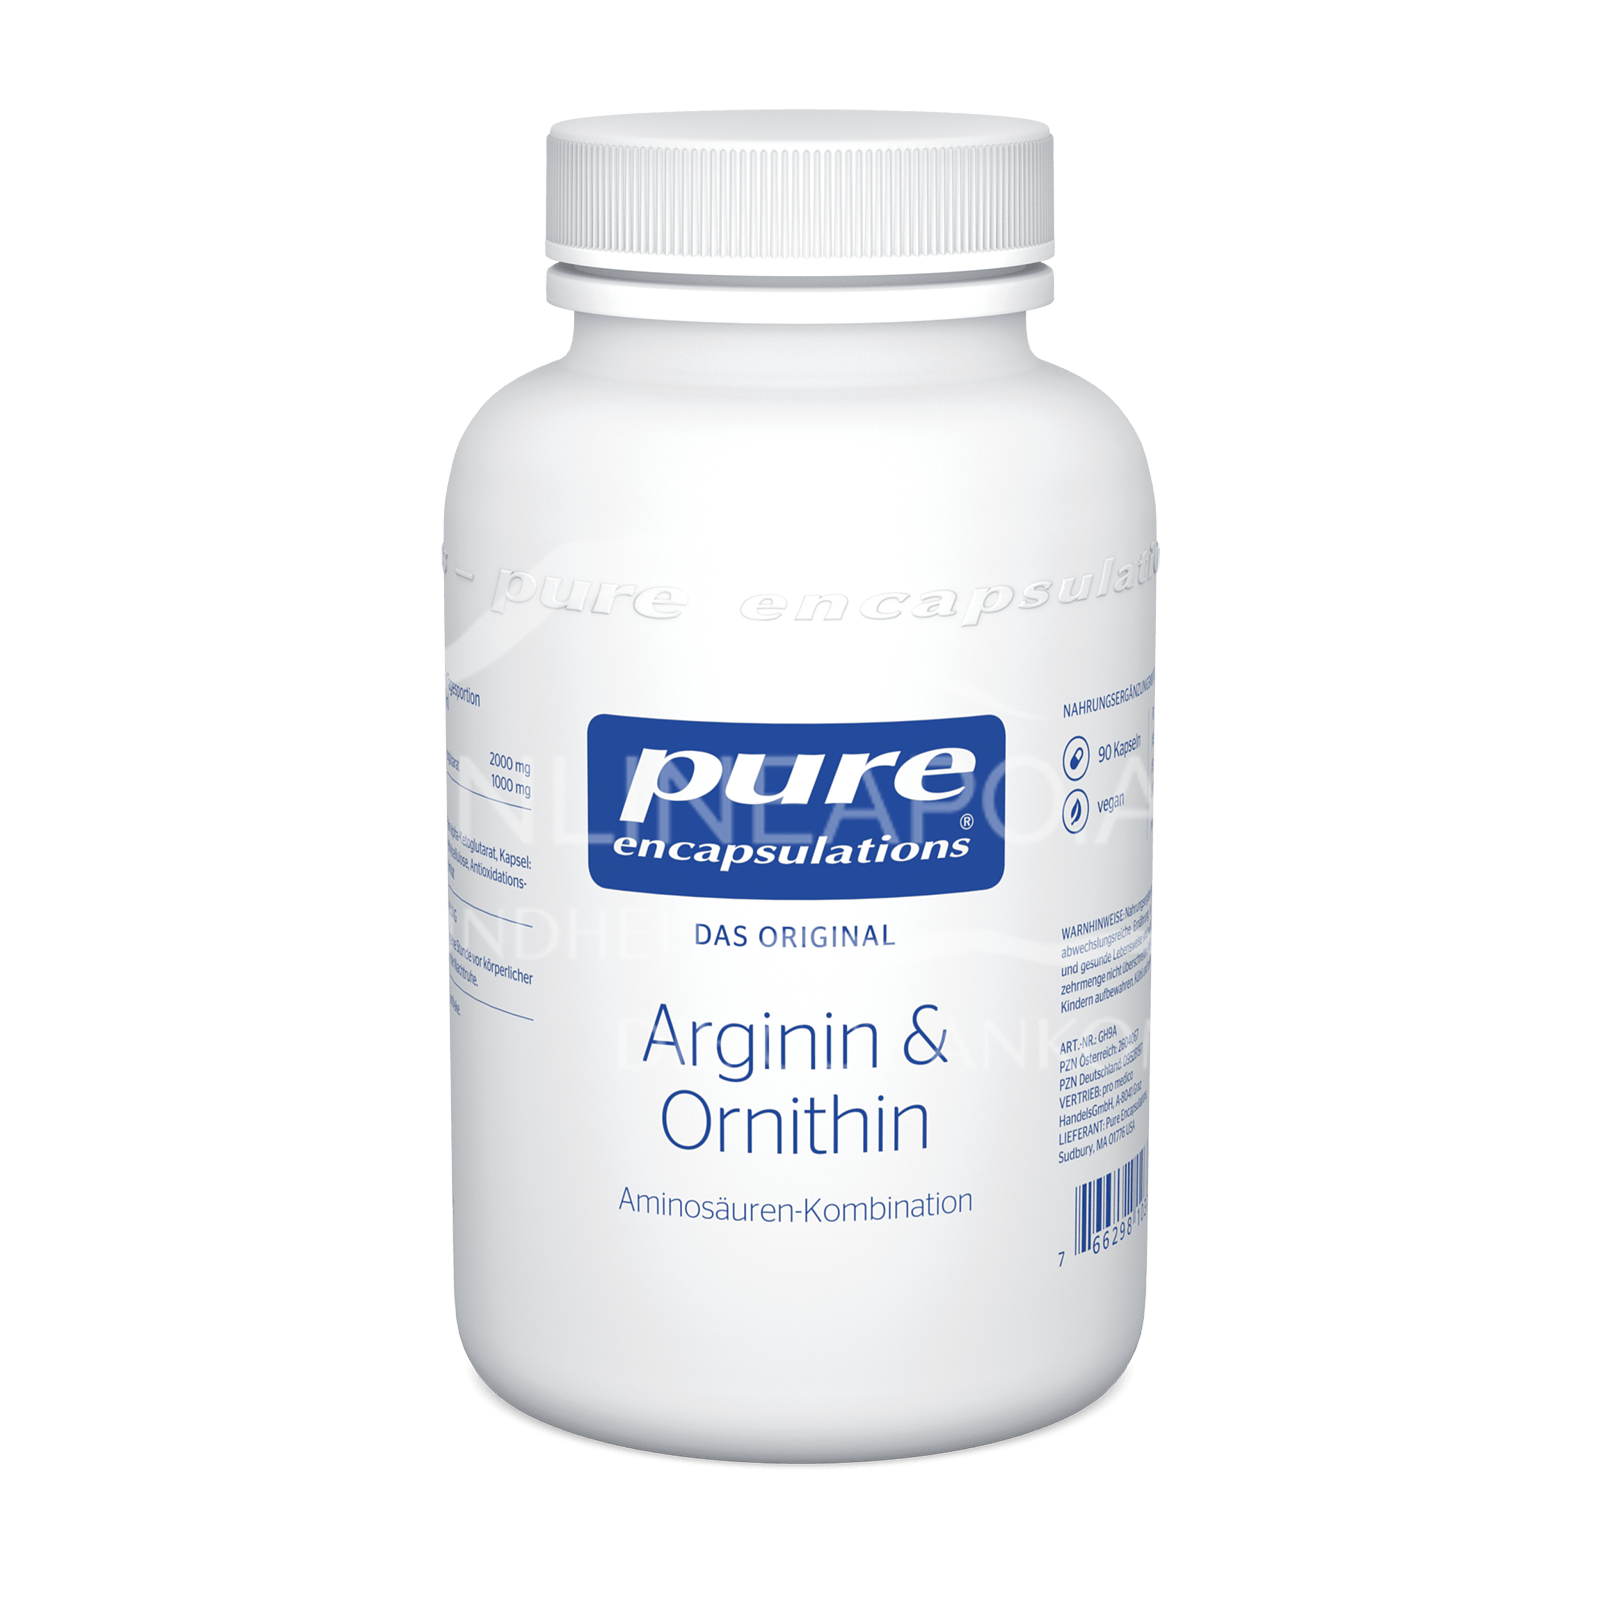 pure encapsulations® Arginin & Ornithin